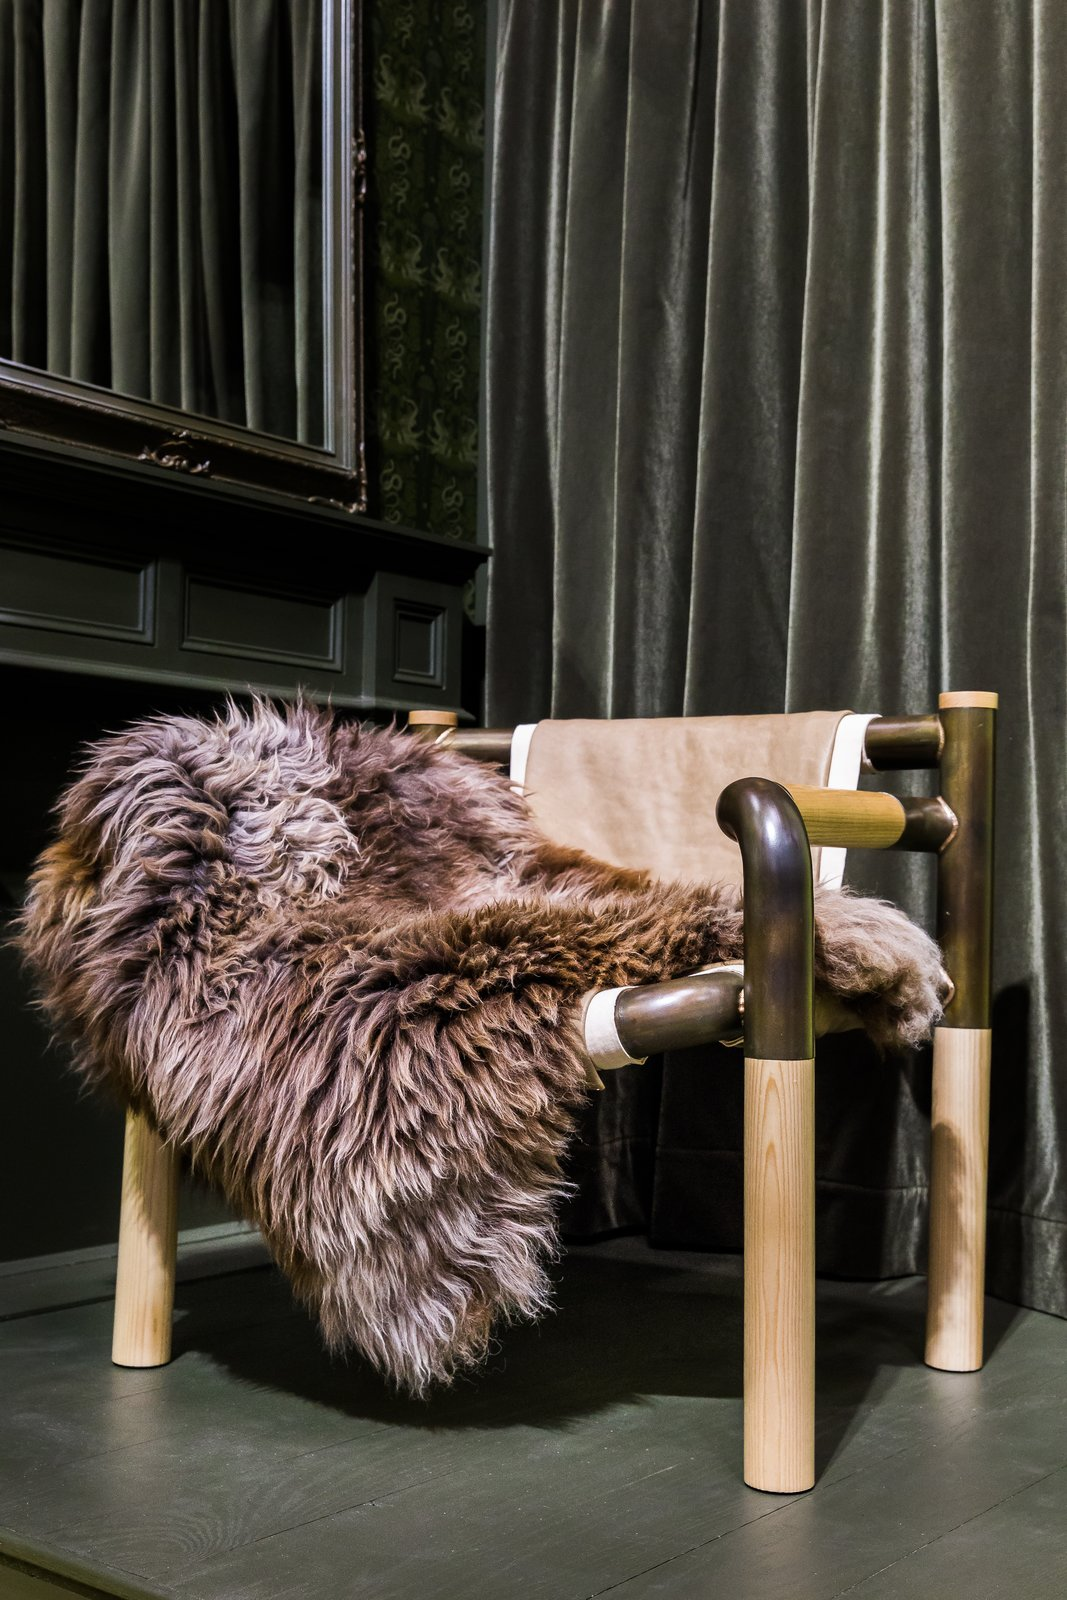 Photo 6 of 11 in 10 New Chairs That Caught Our Eye From New York Design Week 2017